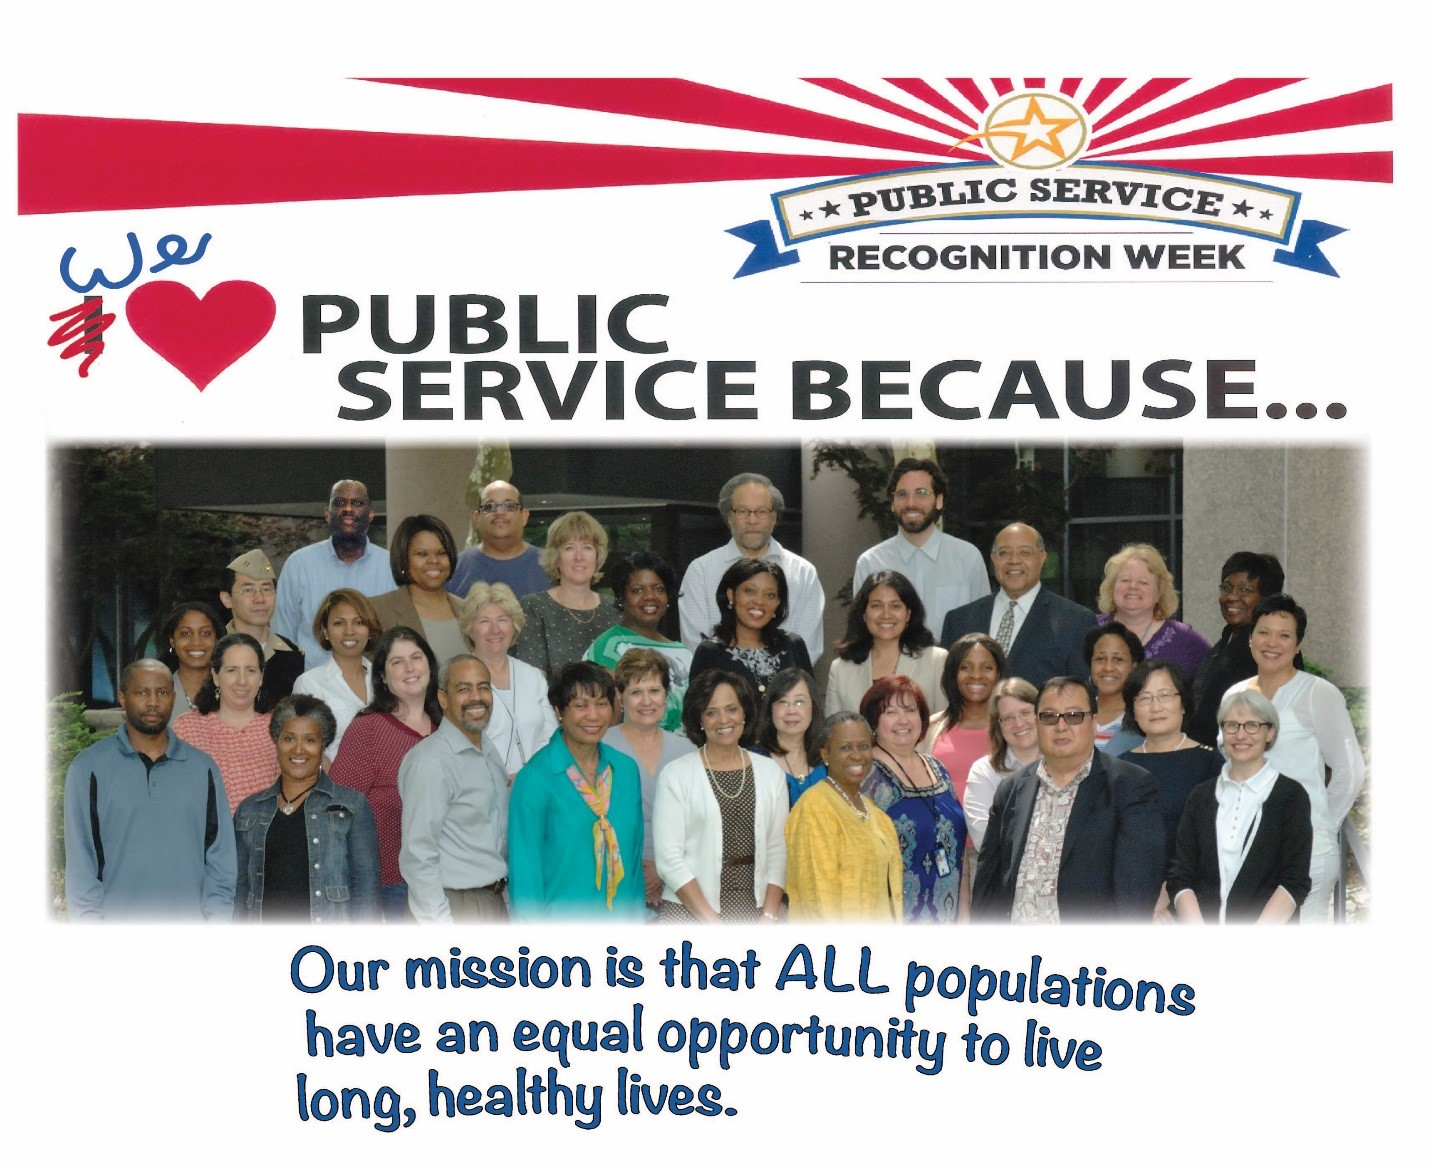 NIMHD staff celebrate Public Service Recognition Week